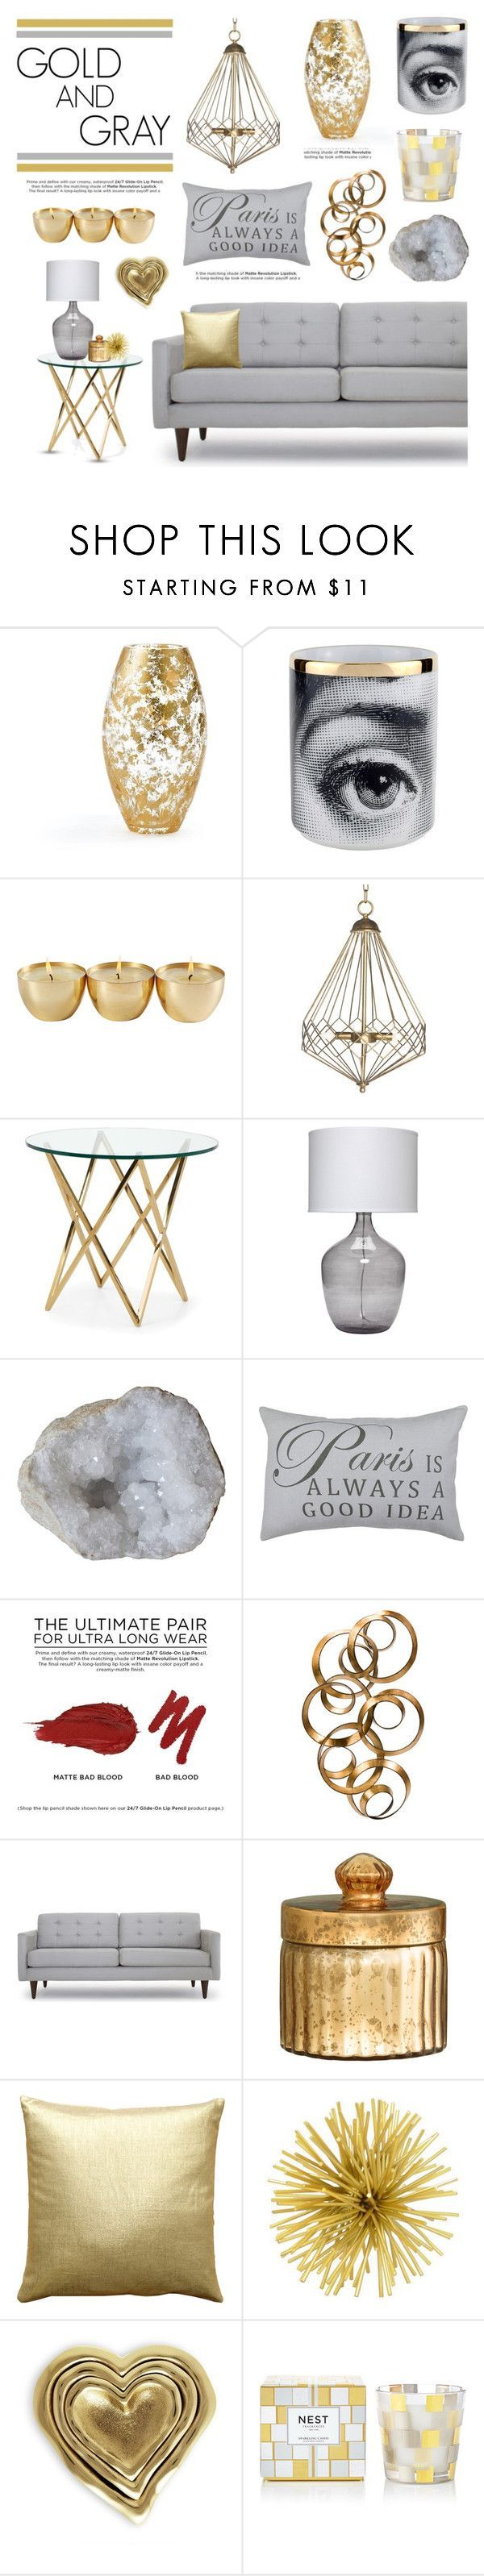 """Gold and Gray"" by lgb321 ❤ liked on Polyvore featuring interior, interiors, interior design, home, home decor, interior decorating, AERIN, Fornasetti, Aidan Gray and Jamie Young"